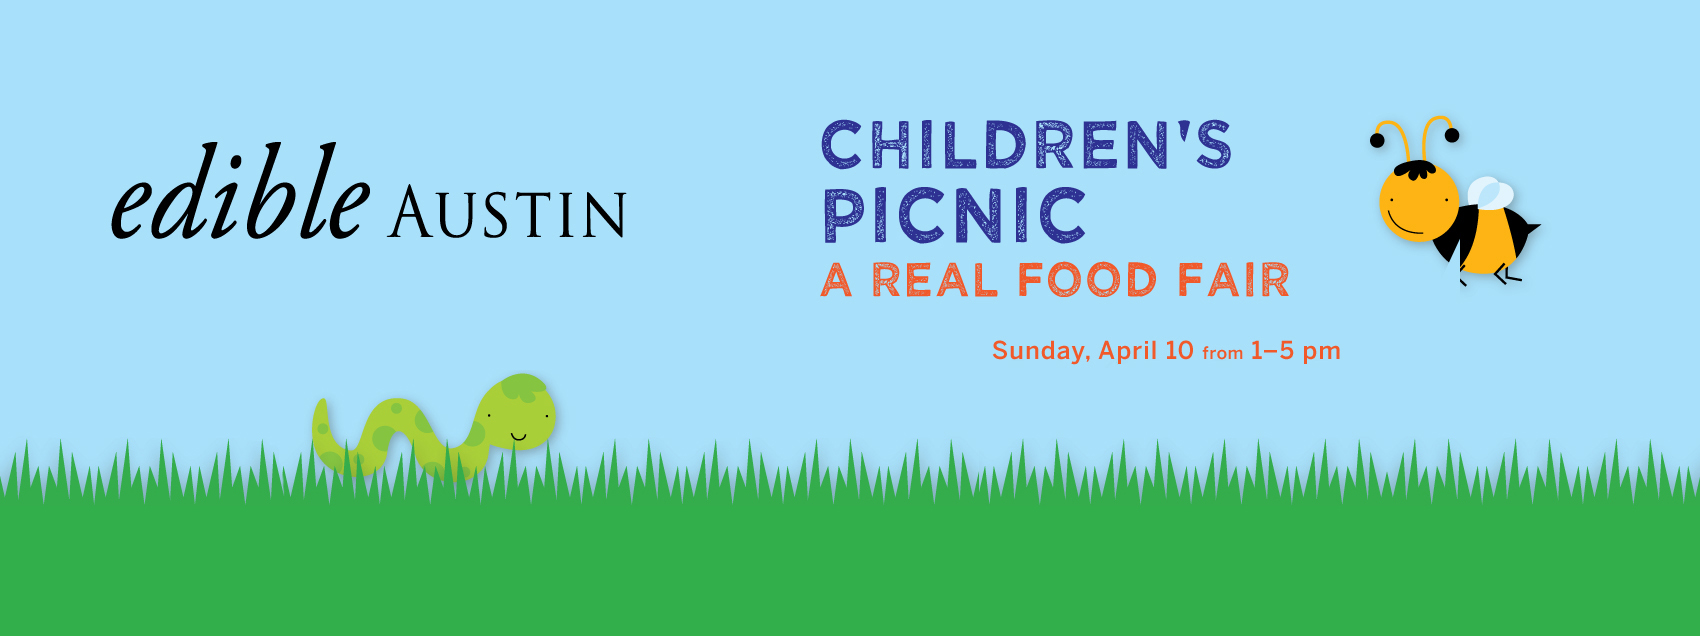 Free | Children's Picnic and Real Food Fair